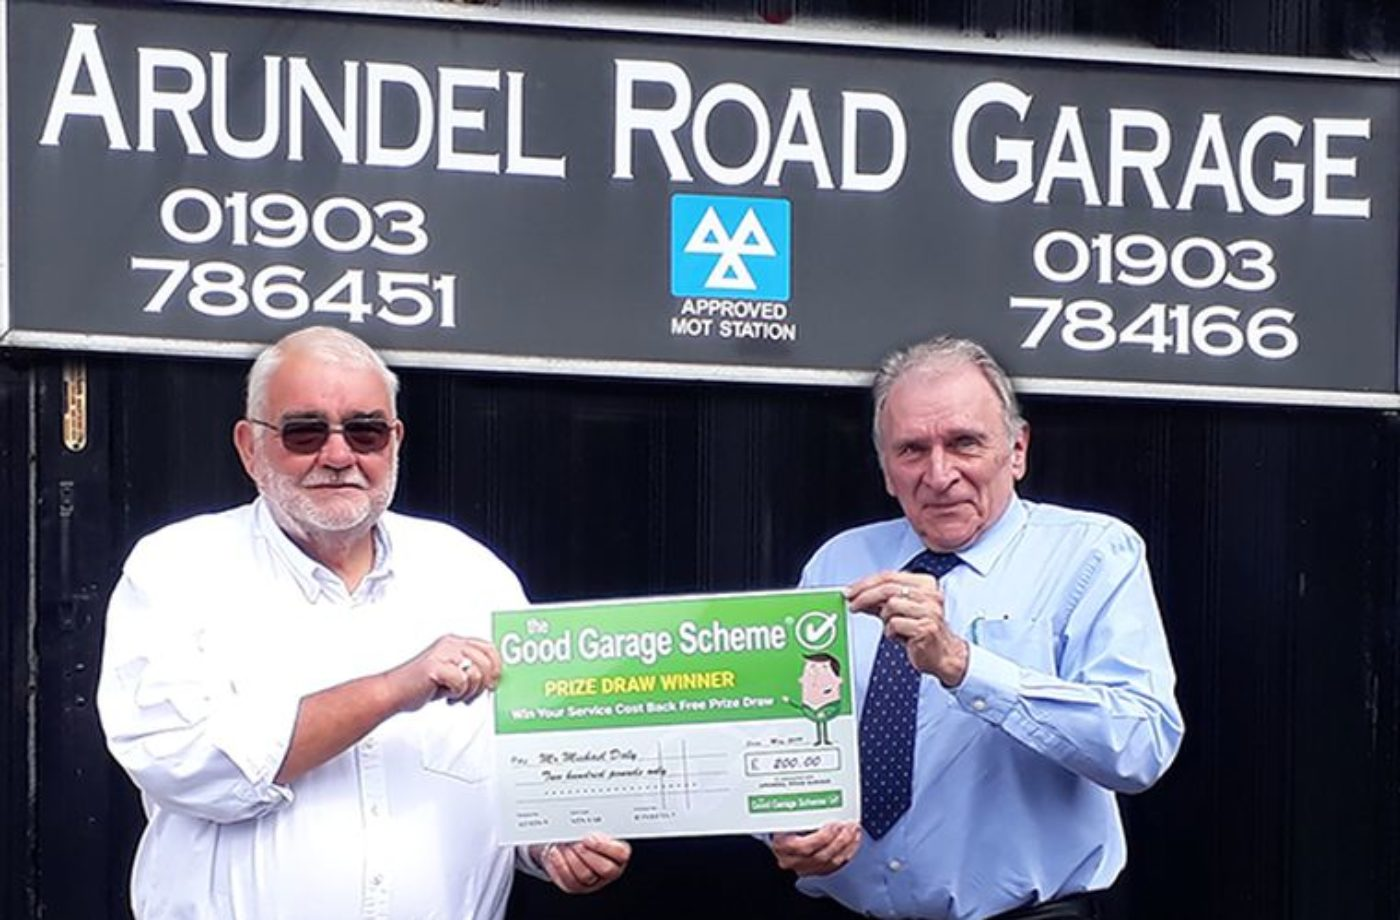 Good Garage Scheme winner selected for £200 prize